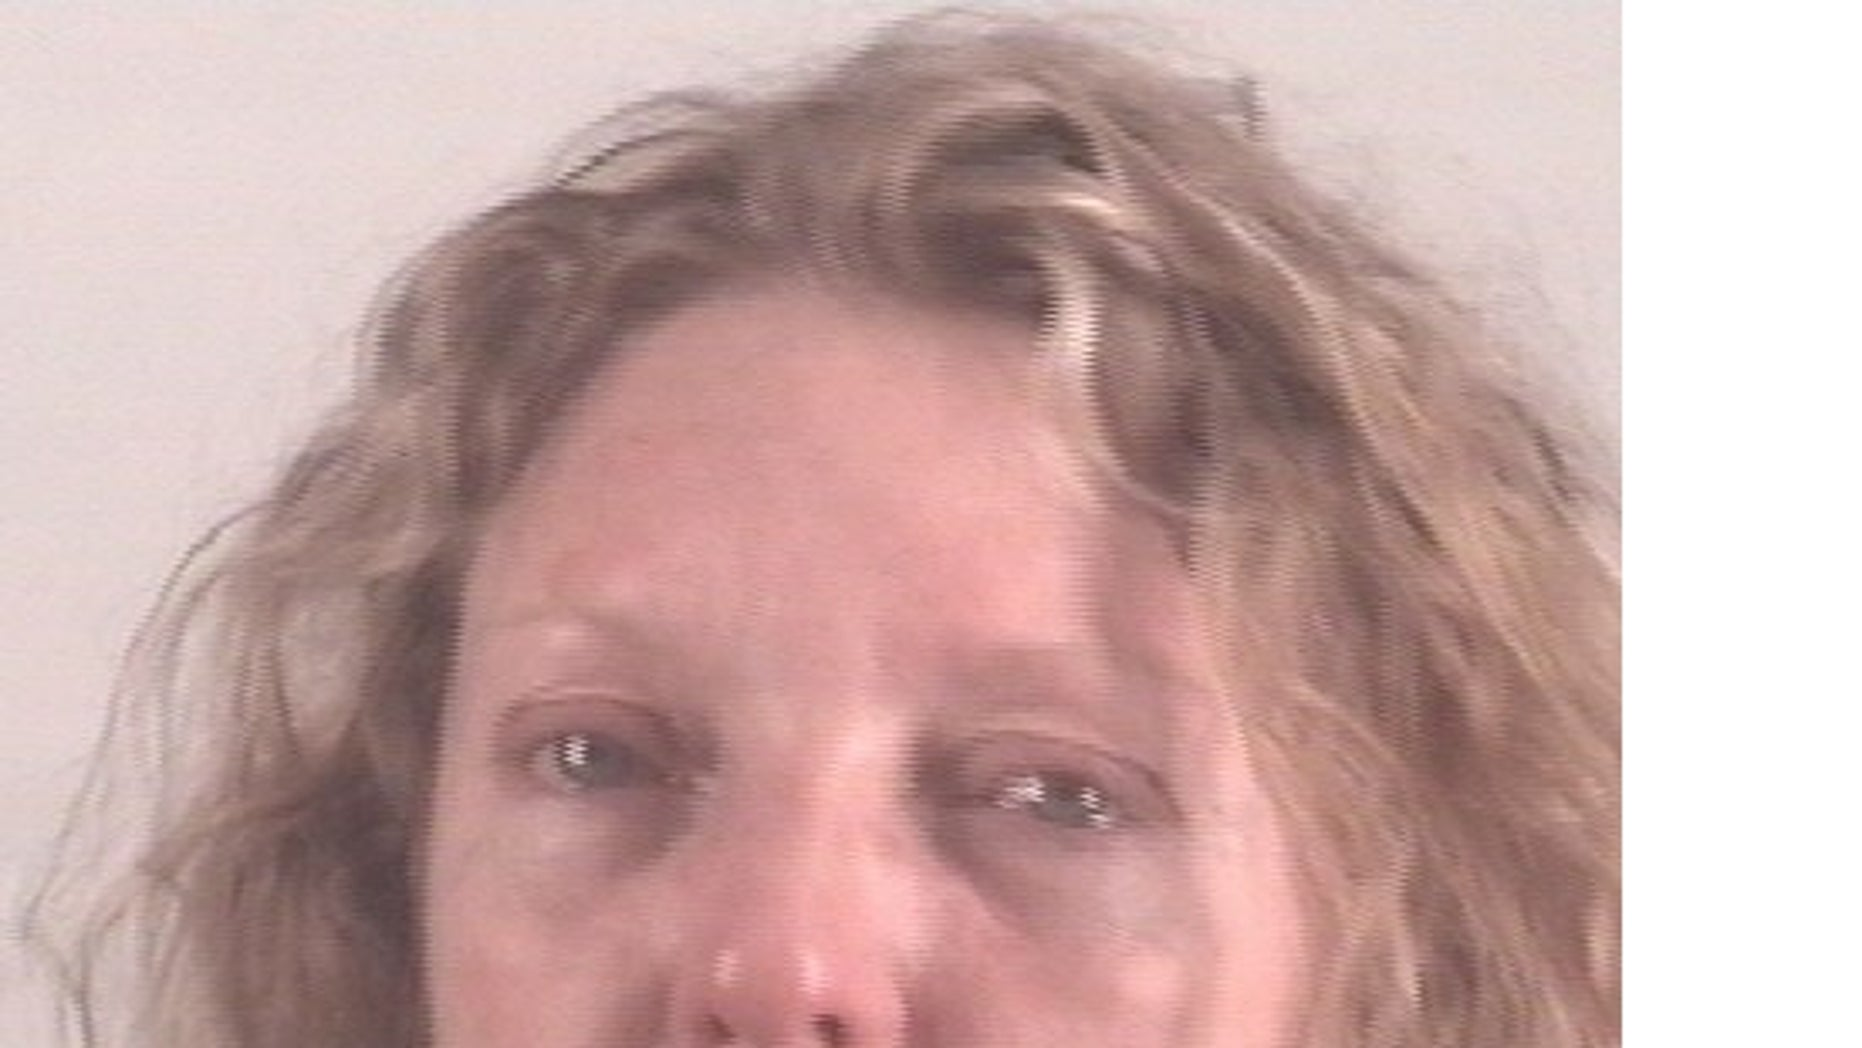 An arrest warrant was issued for Tonya Couch, 51, on Wednesday by a Texas judge for allegedly violating the terms of her bond.